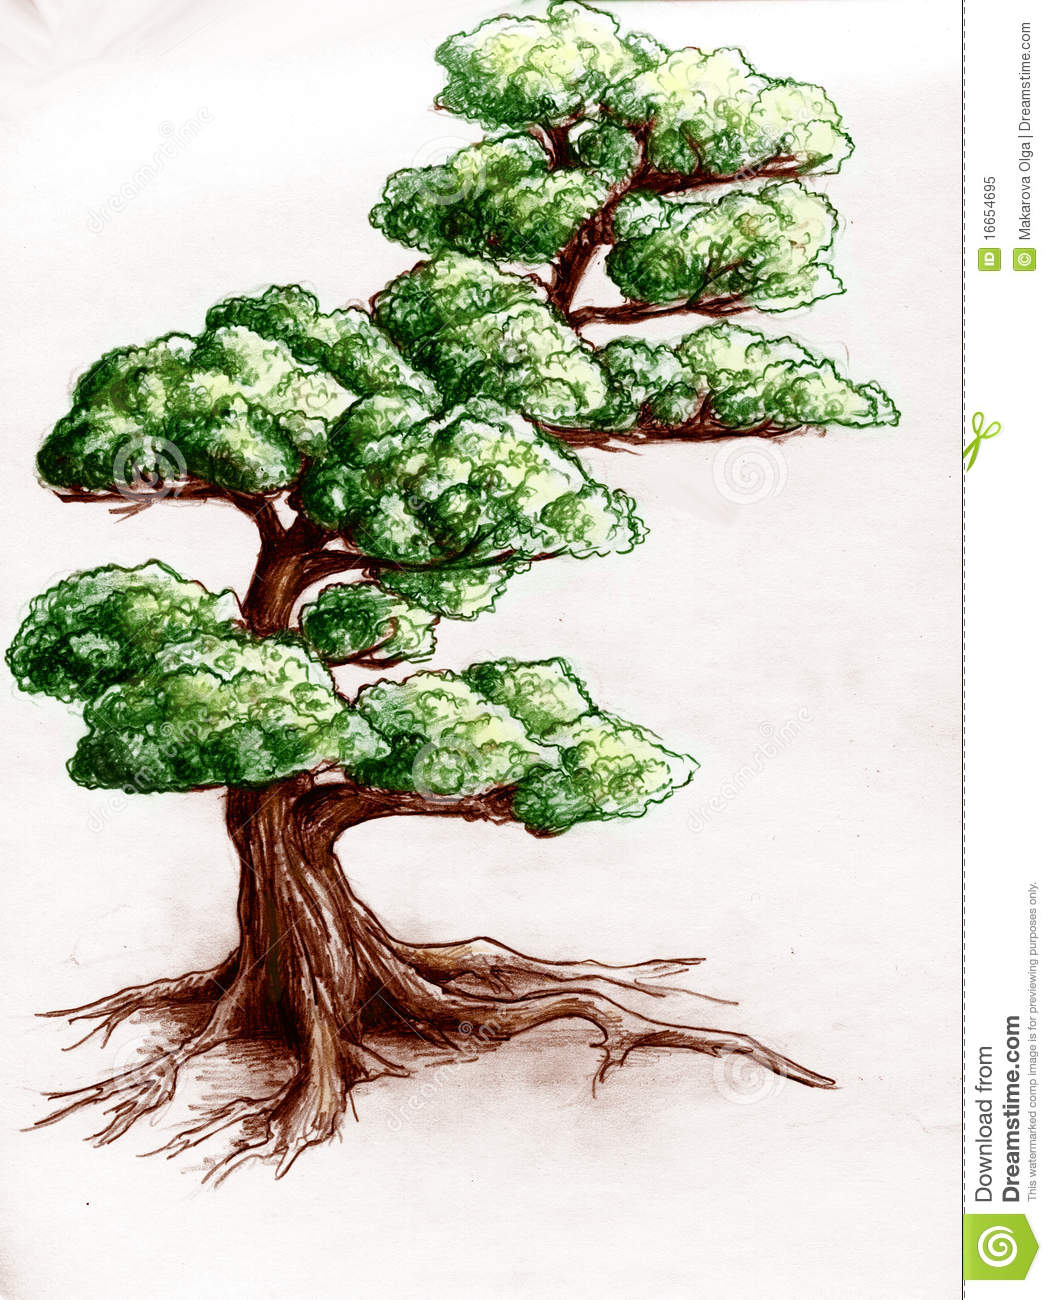 Hand Drawn Tree Stock Illustration. Illustration Of Color - 16654695